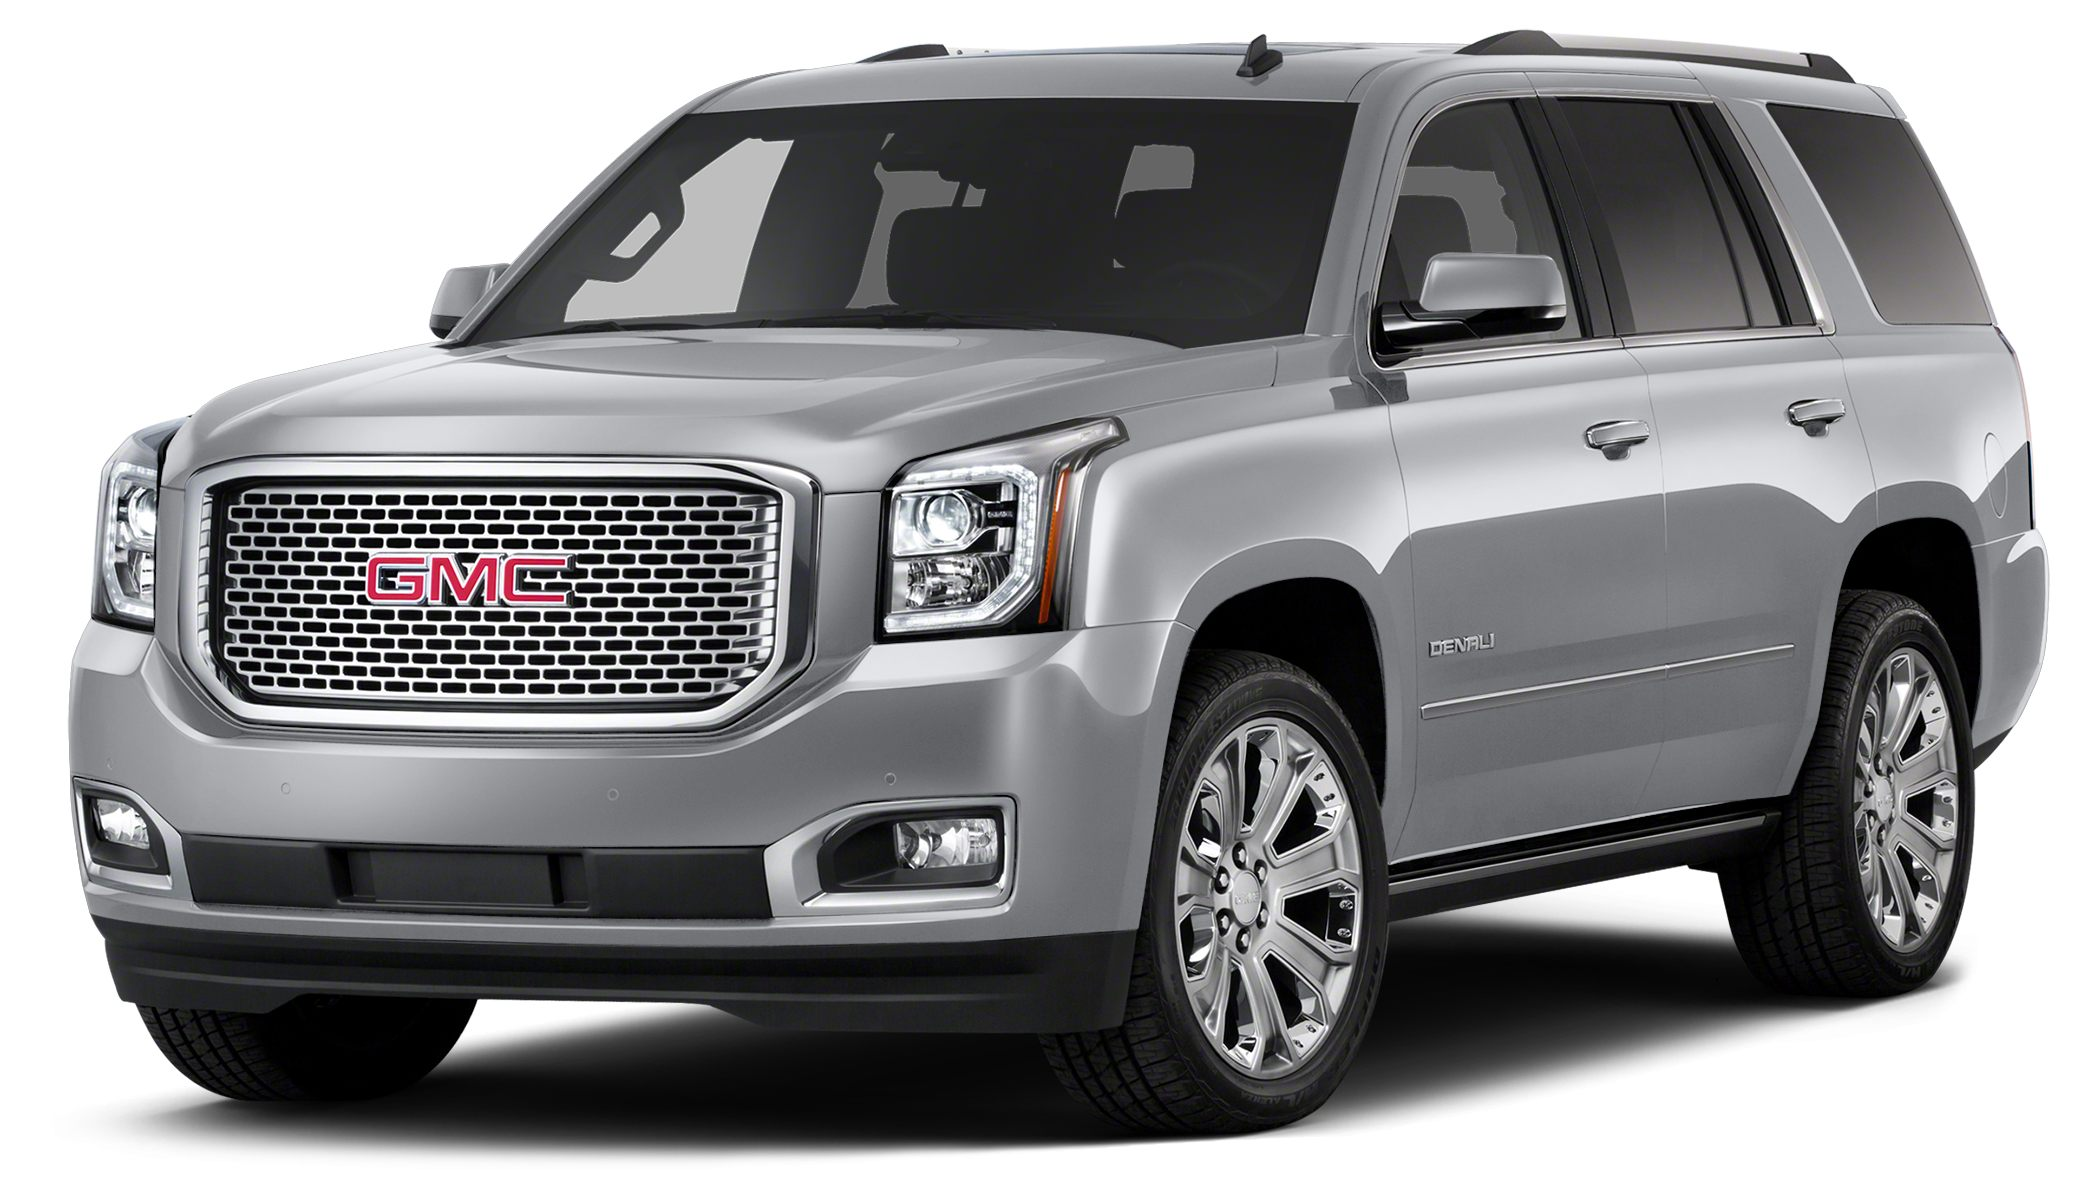 2015 GMC Yukon Denali Own the road at every turn 4 Wheel Drive New Arrival Move quickly Sa